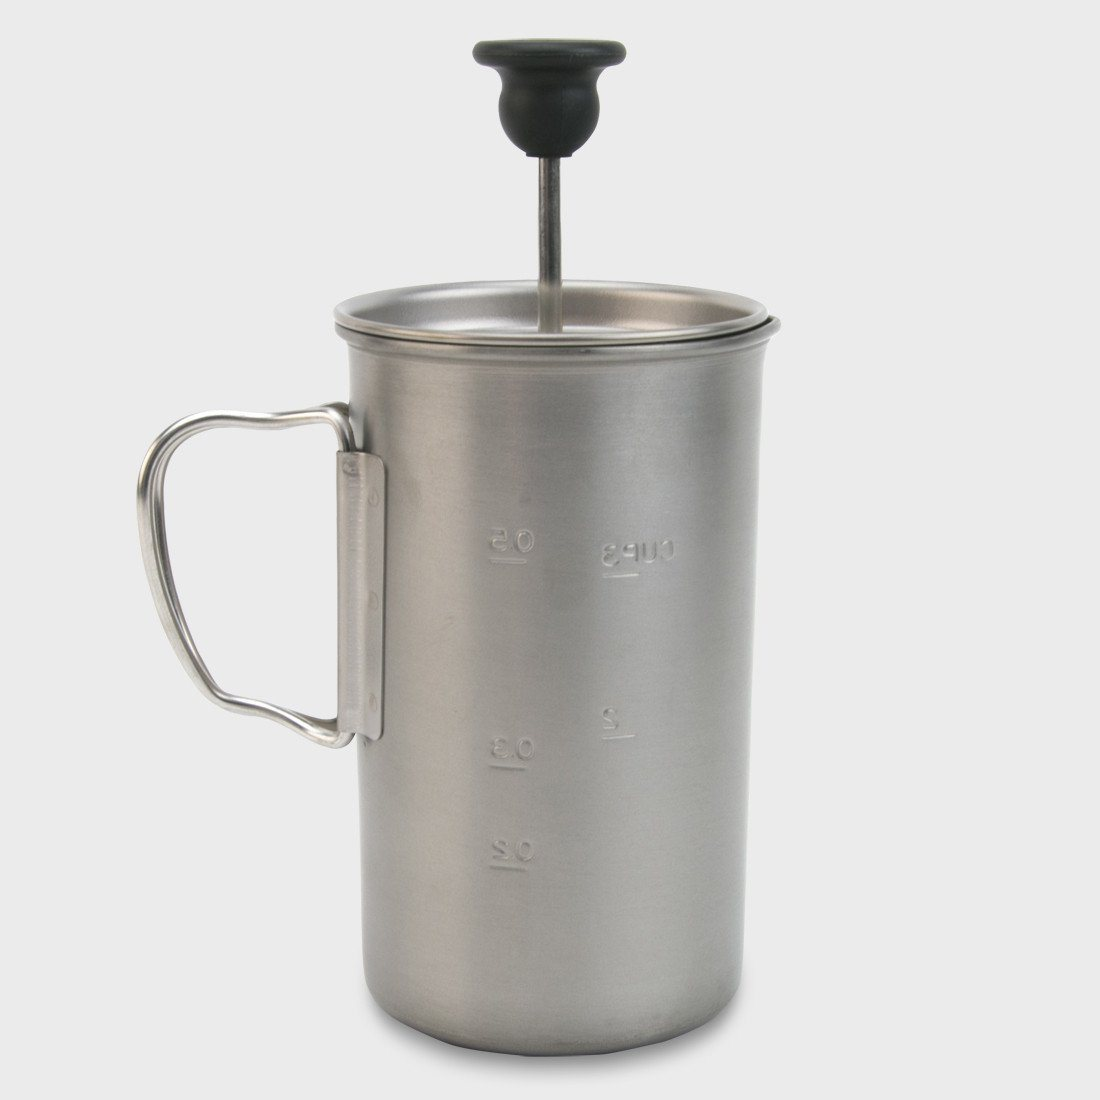 Snow Peak Titanium French Press Titanium / Stainless Steel